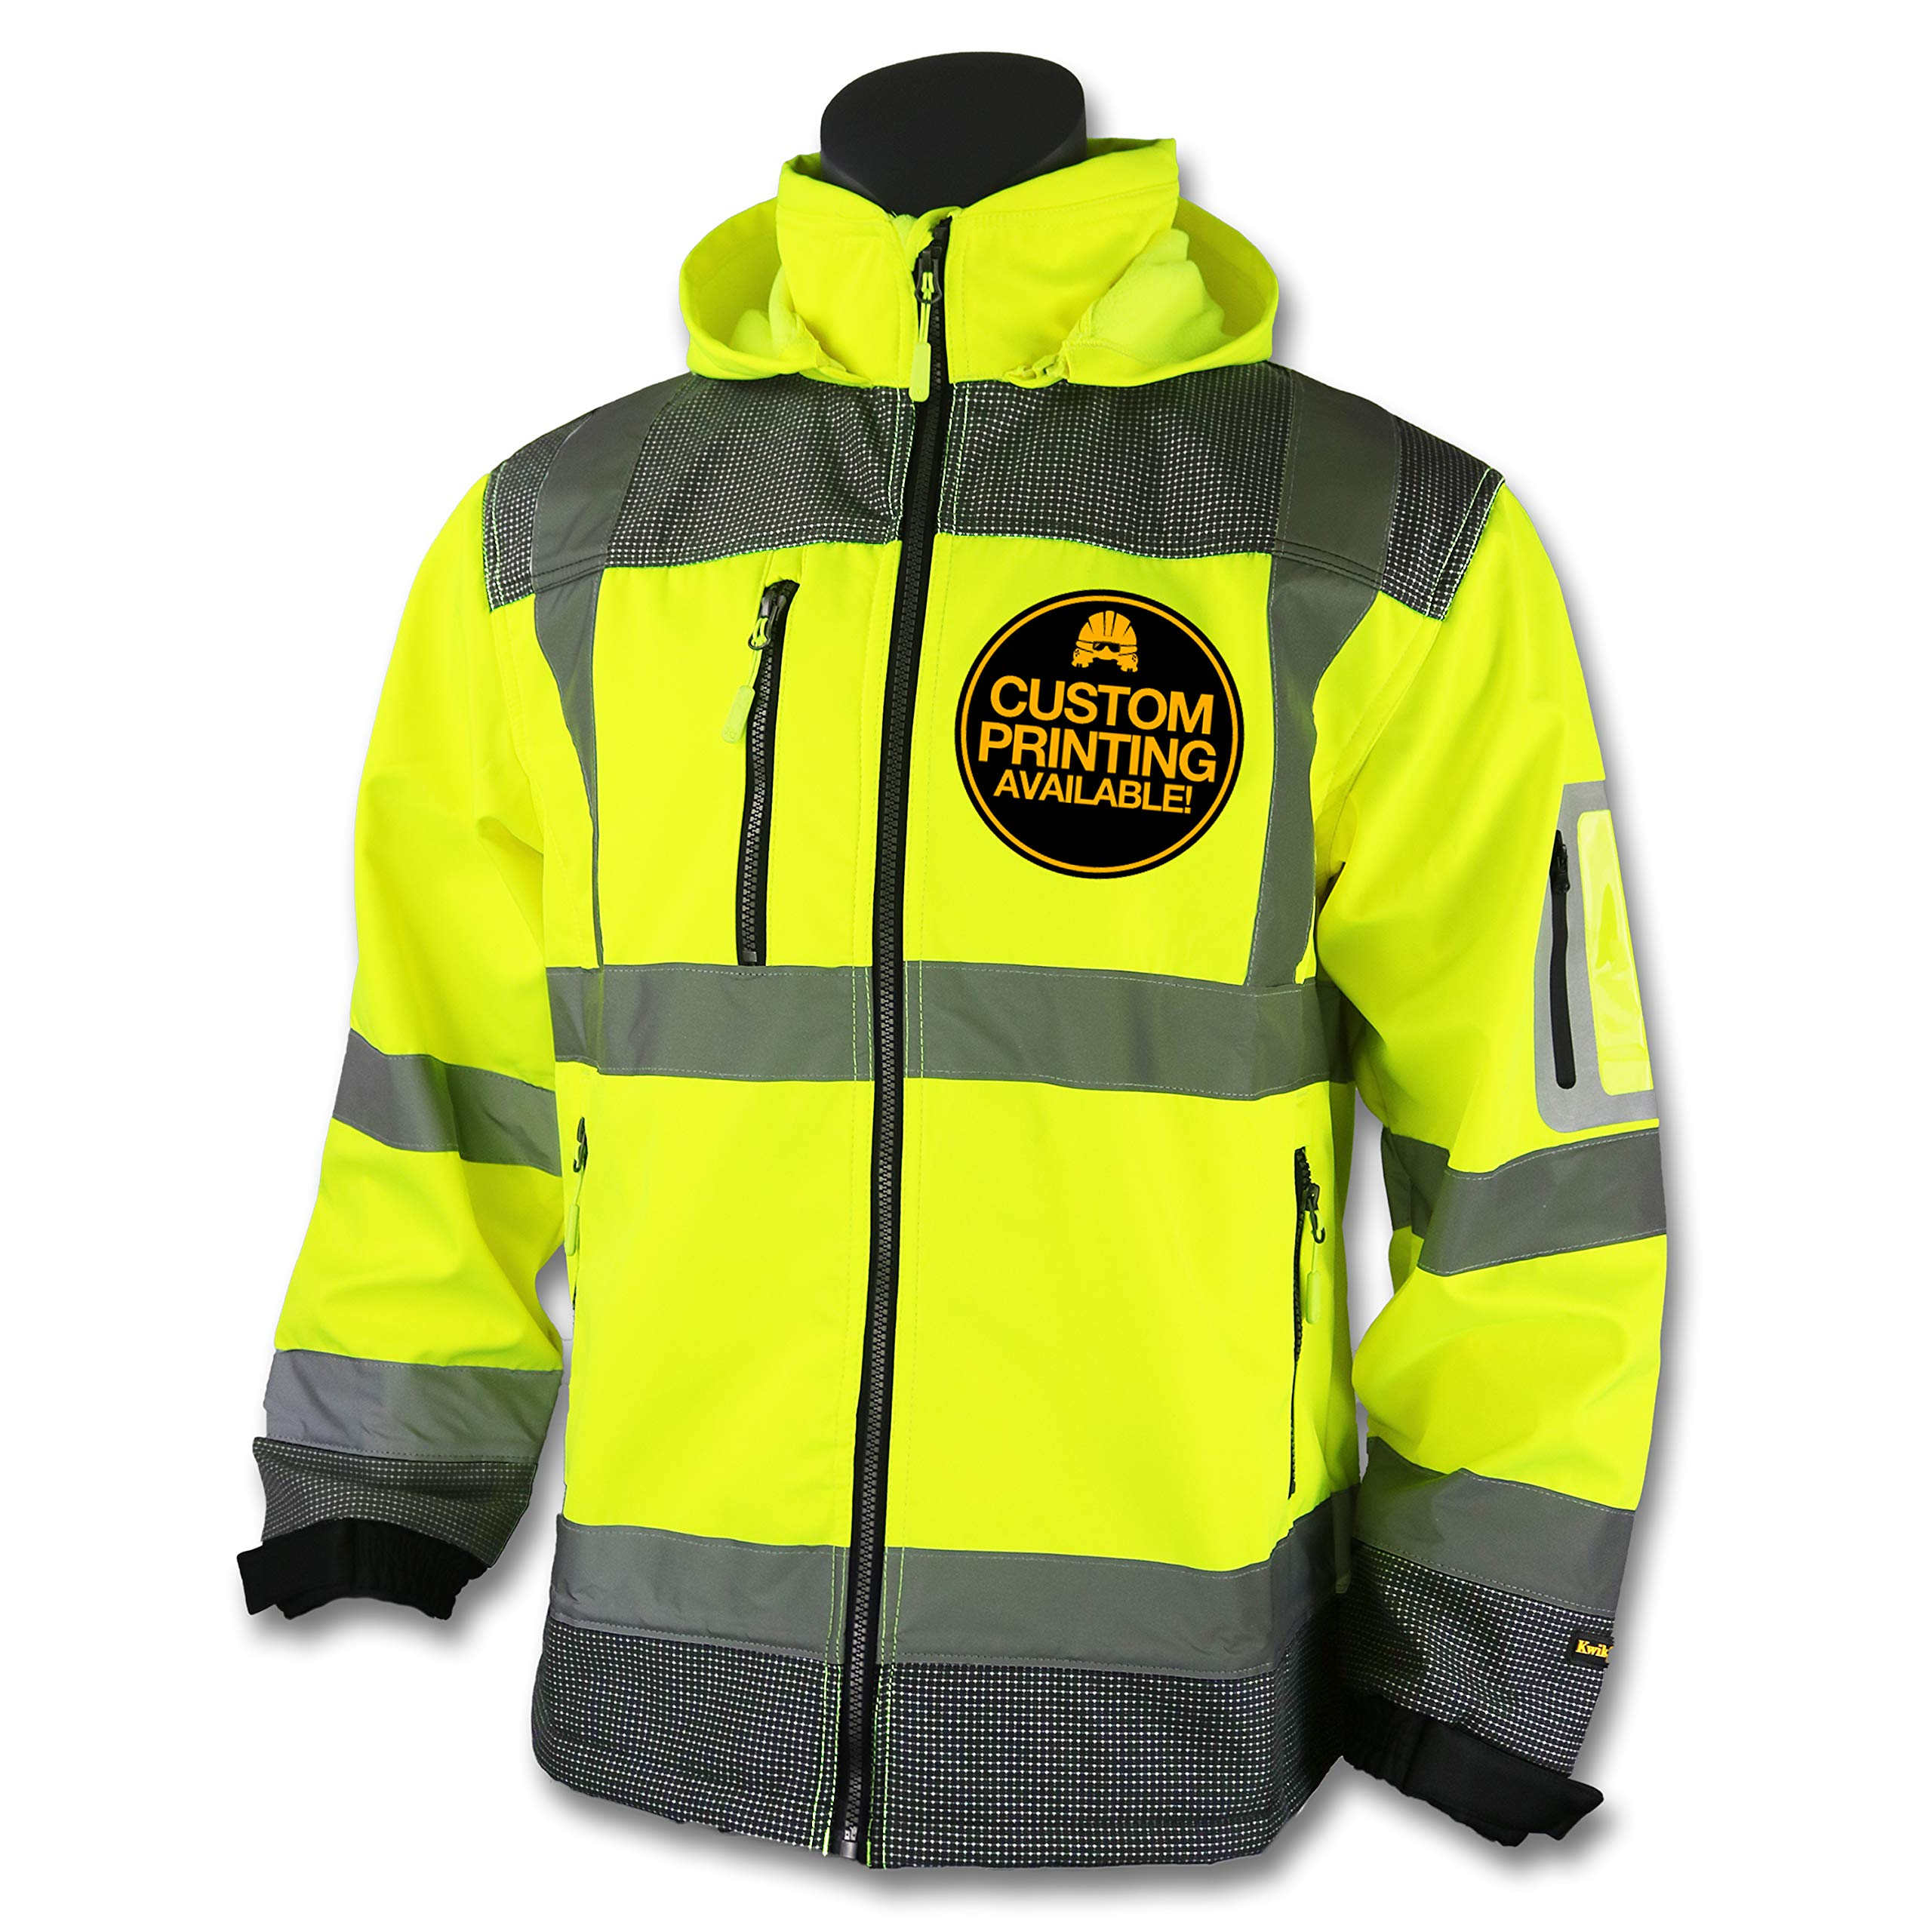 KwikSafety GALAXY | Class 3 Soft Shell Safety Jacket | 360° High Visibility ANSI Compliant OSHA Approved Jacket | Wind Water Resistant Premium Work Wear | Multi Pockets Detachable Hood | Large